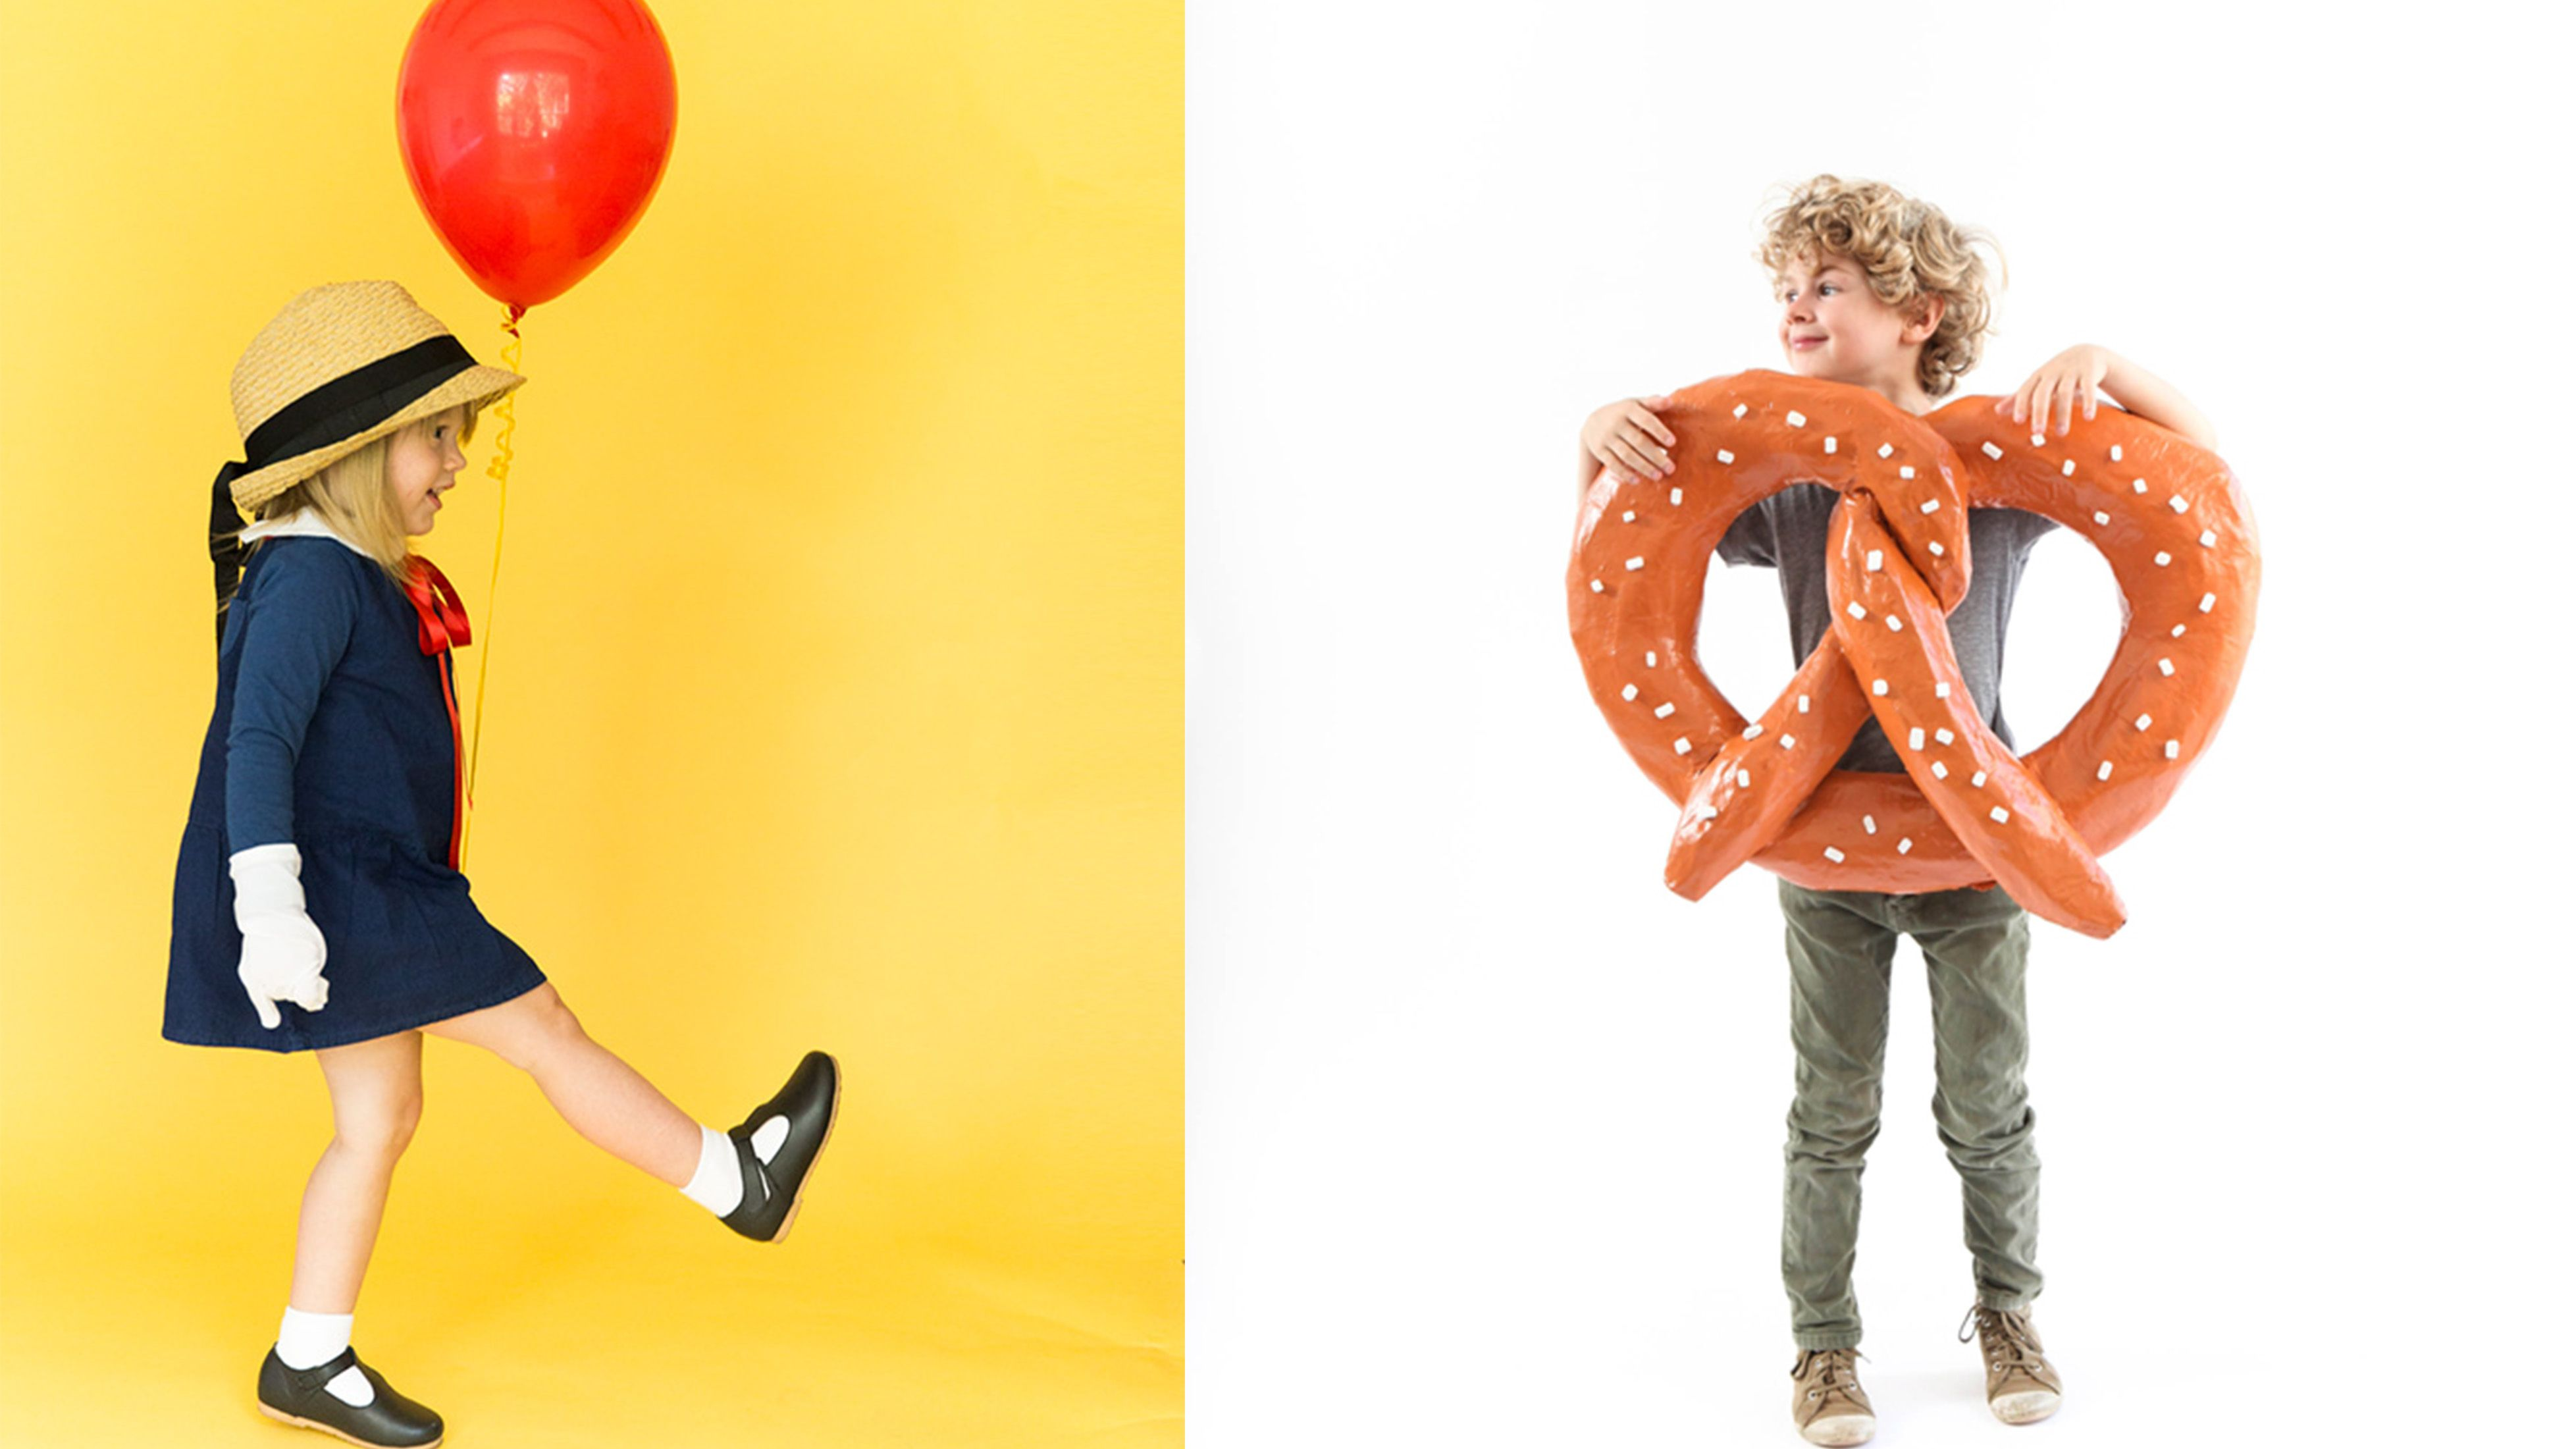 65+ Homemade Halloween Costumes for Kids - Easy DIY Kids Halloween Costume Ideas 2018  sc 1 st  Country Living Magazine & 65+ Homemade Halloween Costumes for Kids - Easy DIY Kids Halloween ...